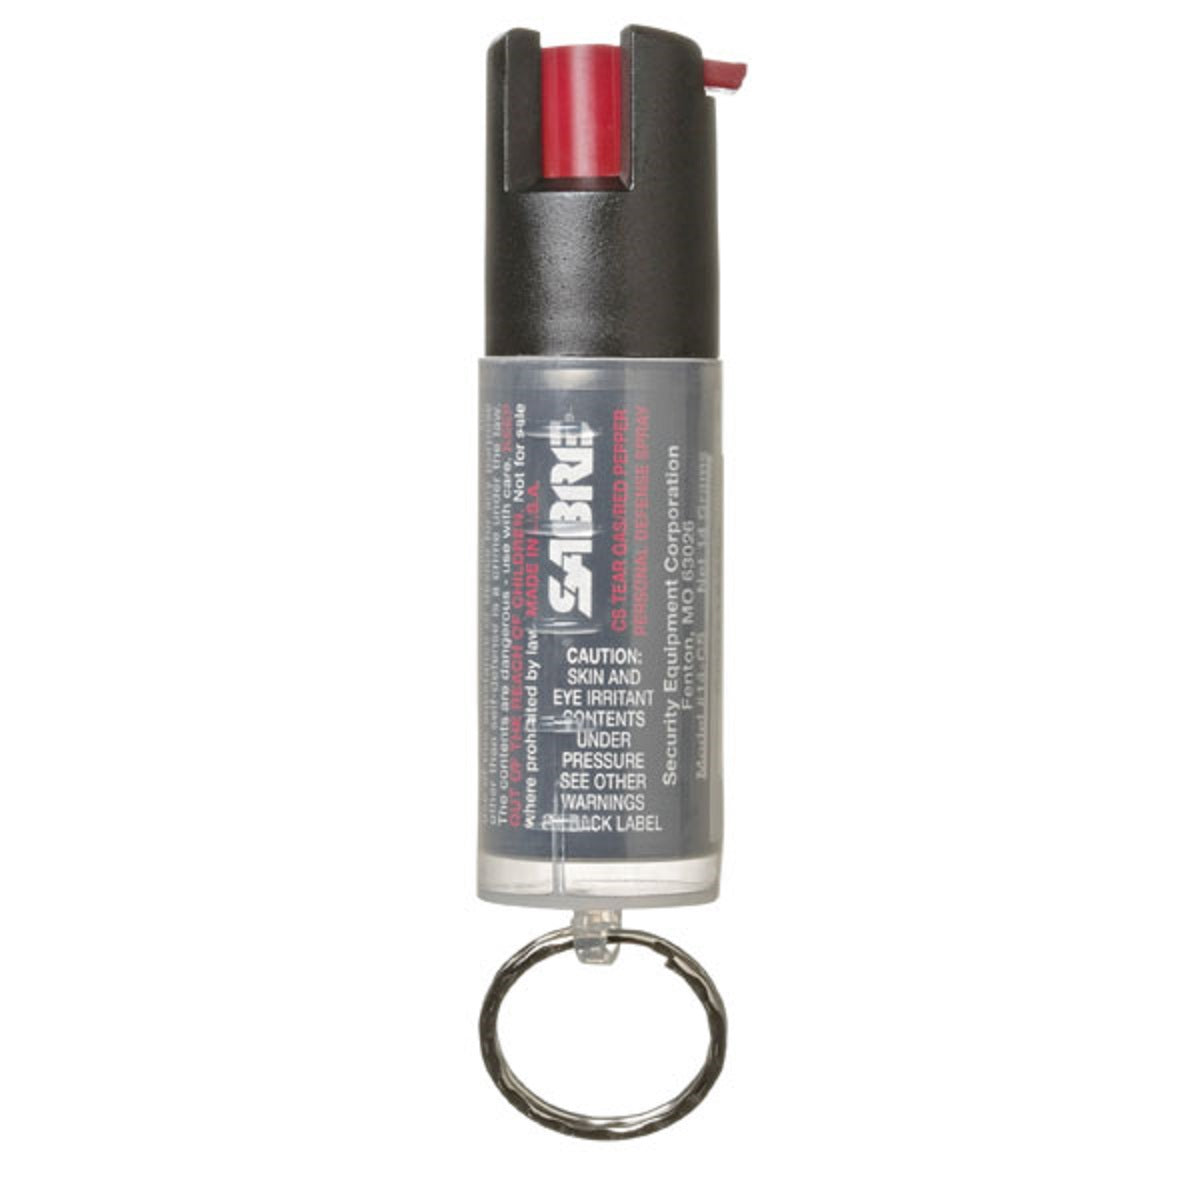 SABRE 3-IN-1 .54oz Pepper Spray + Tear Gas + UV Identifying Dye W/Key Ring